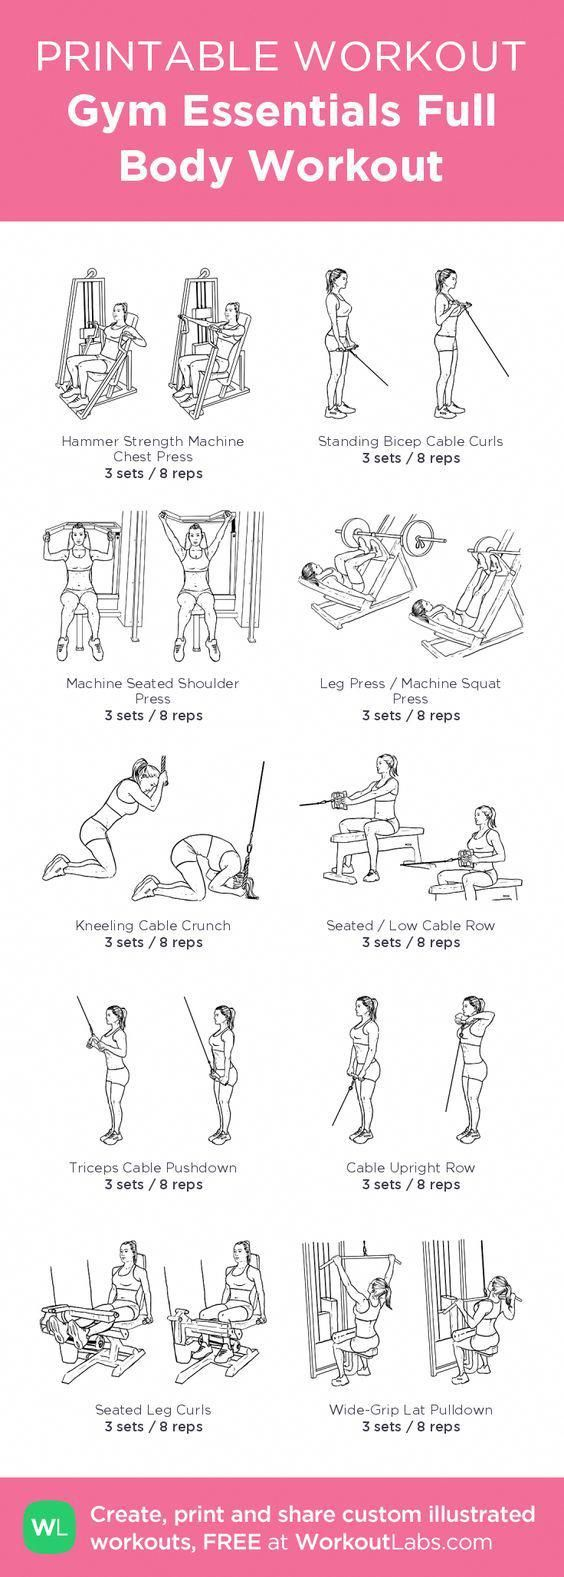 Printable Full-Body Circuit Workout — No Equipment Needed! – Full body weight workout